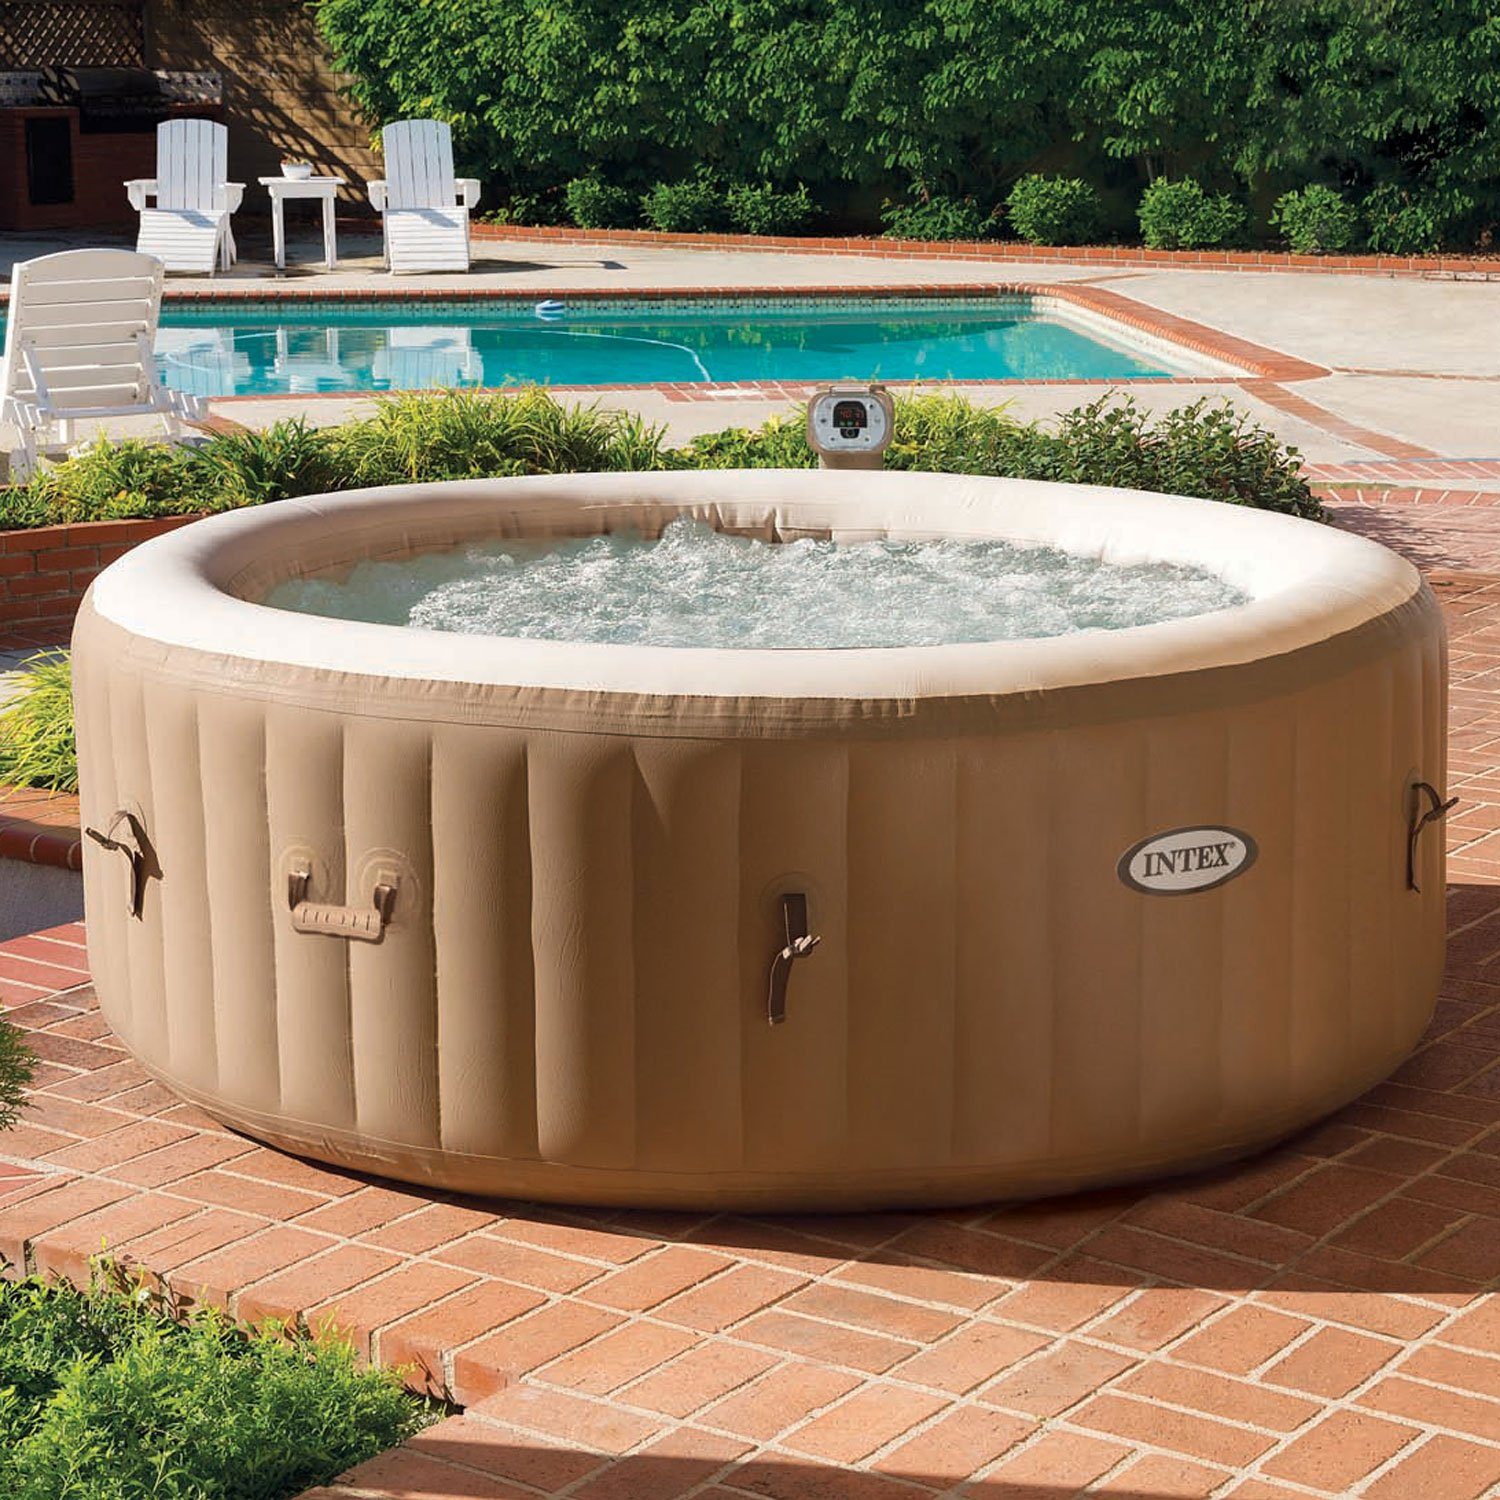 Jacuzzi Intex Leroy Merlin Spa Gonflable Intex Leroy Merlin